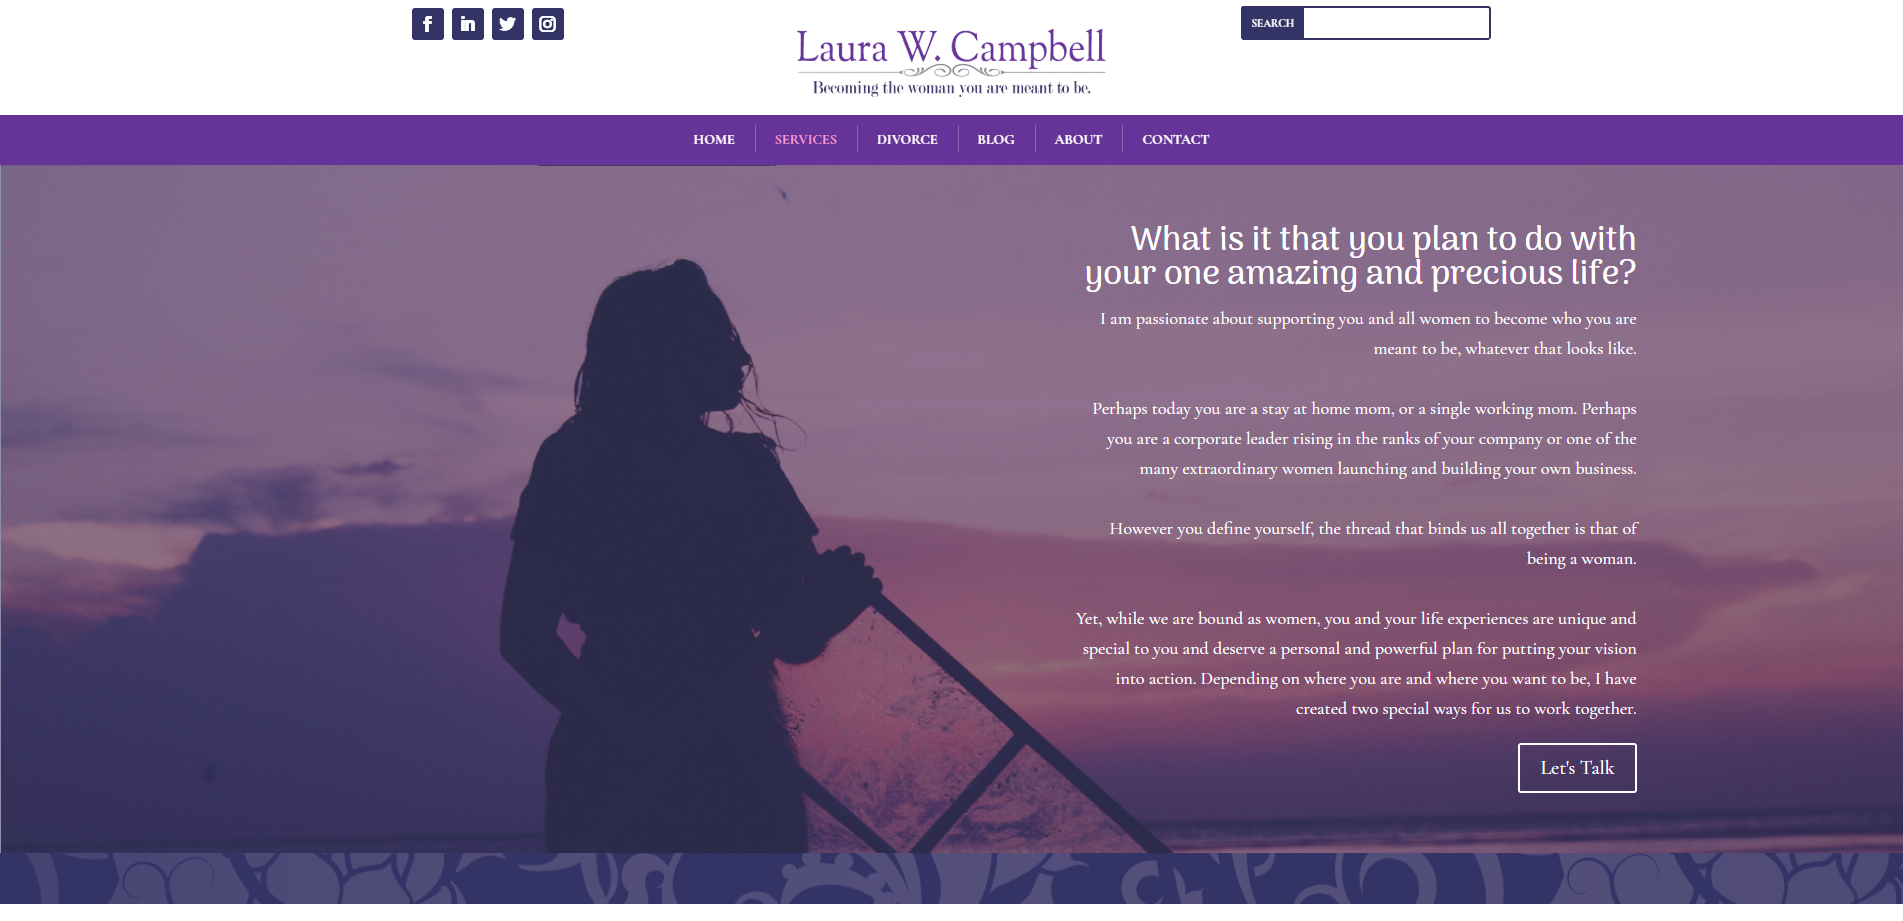 screenshot-laurawcampbell.com-2020.08.19-17-57-55